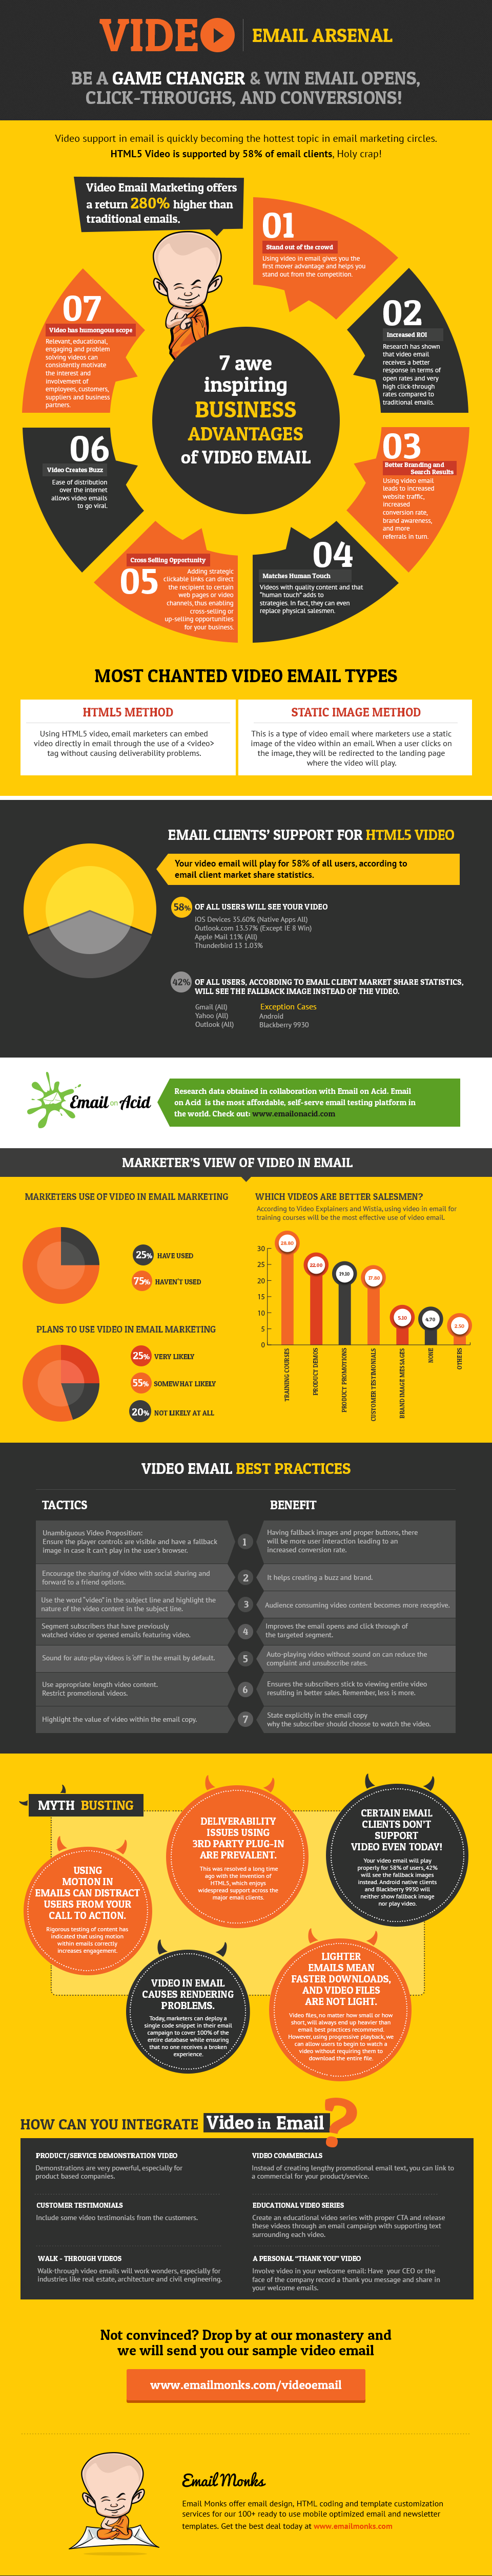 Video email arsenal [infographic]